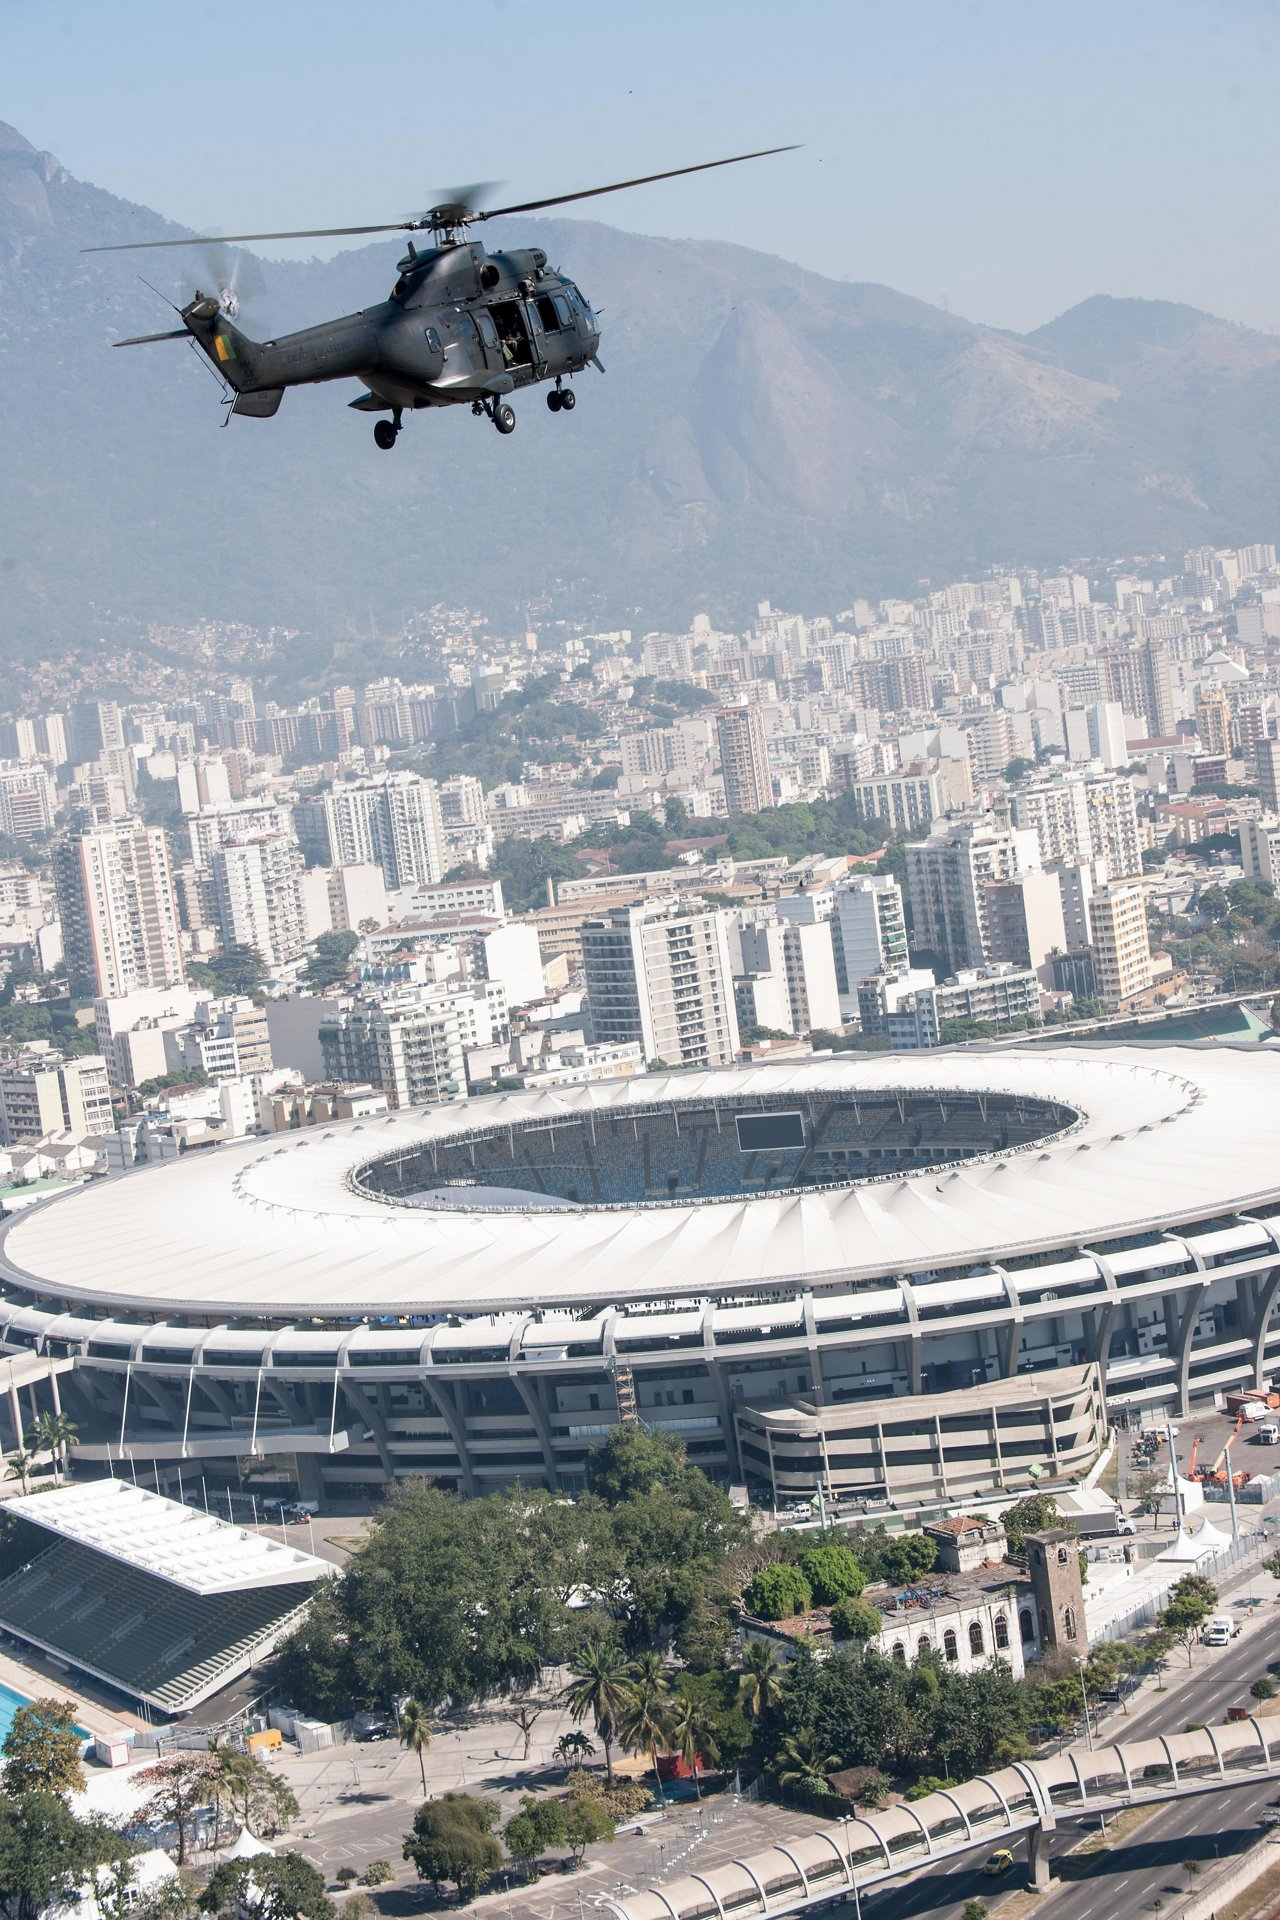 Airbus helicopters achieve 98 percent availability during 2016 Rio Olympic Games